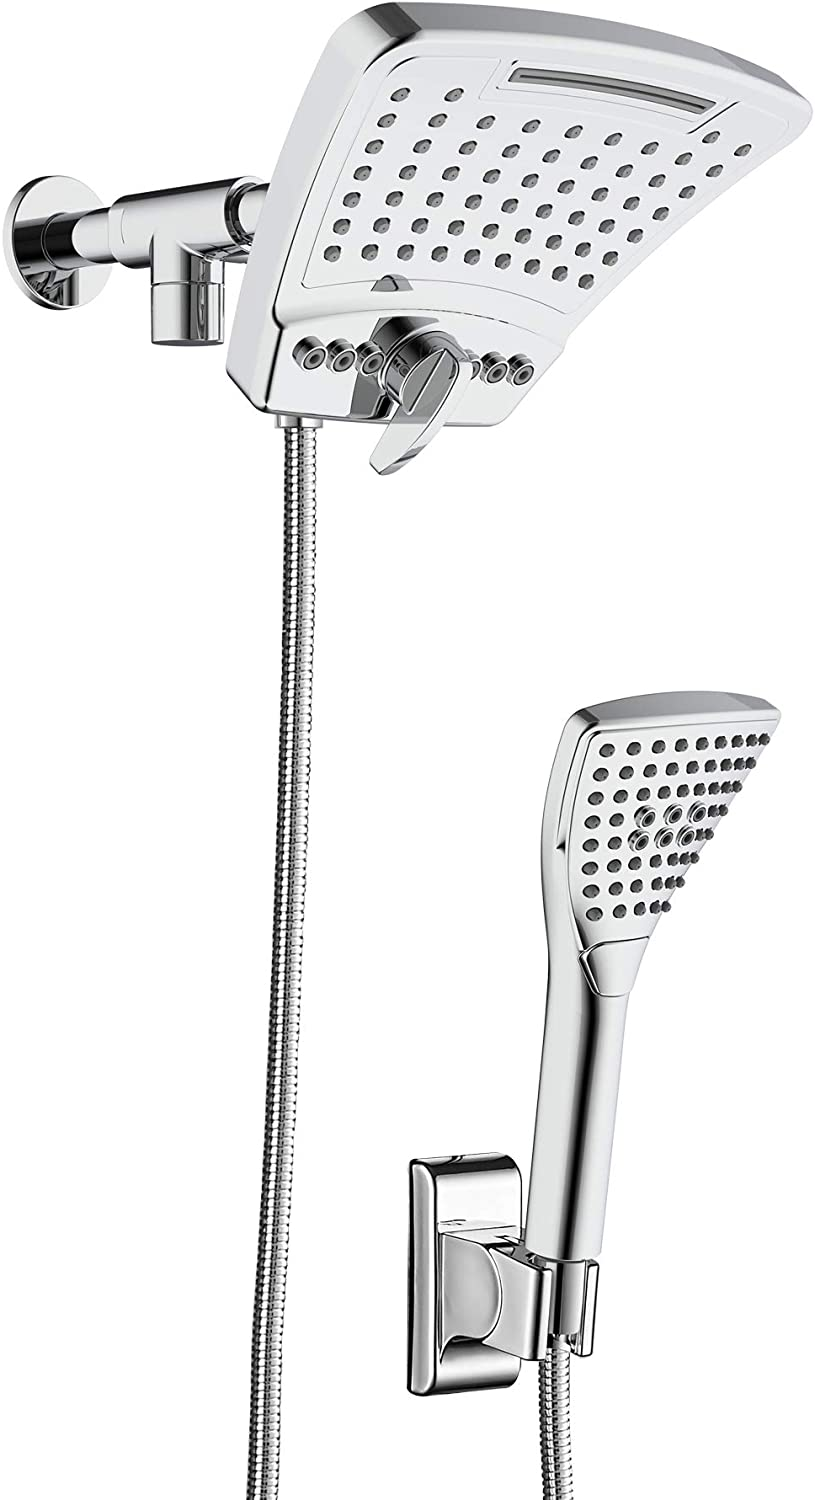 Pulse Showerspas 1056 Ch Powershot Shower System With Air Infused Curved 8 Multi Pattern Showerhead And 3 Function Hand Shower Polished Chrome Finish Amazon Com